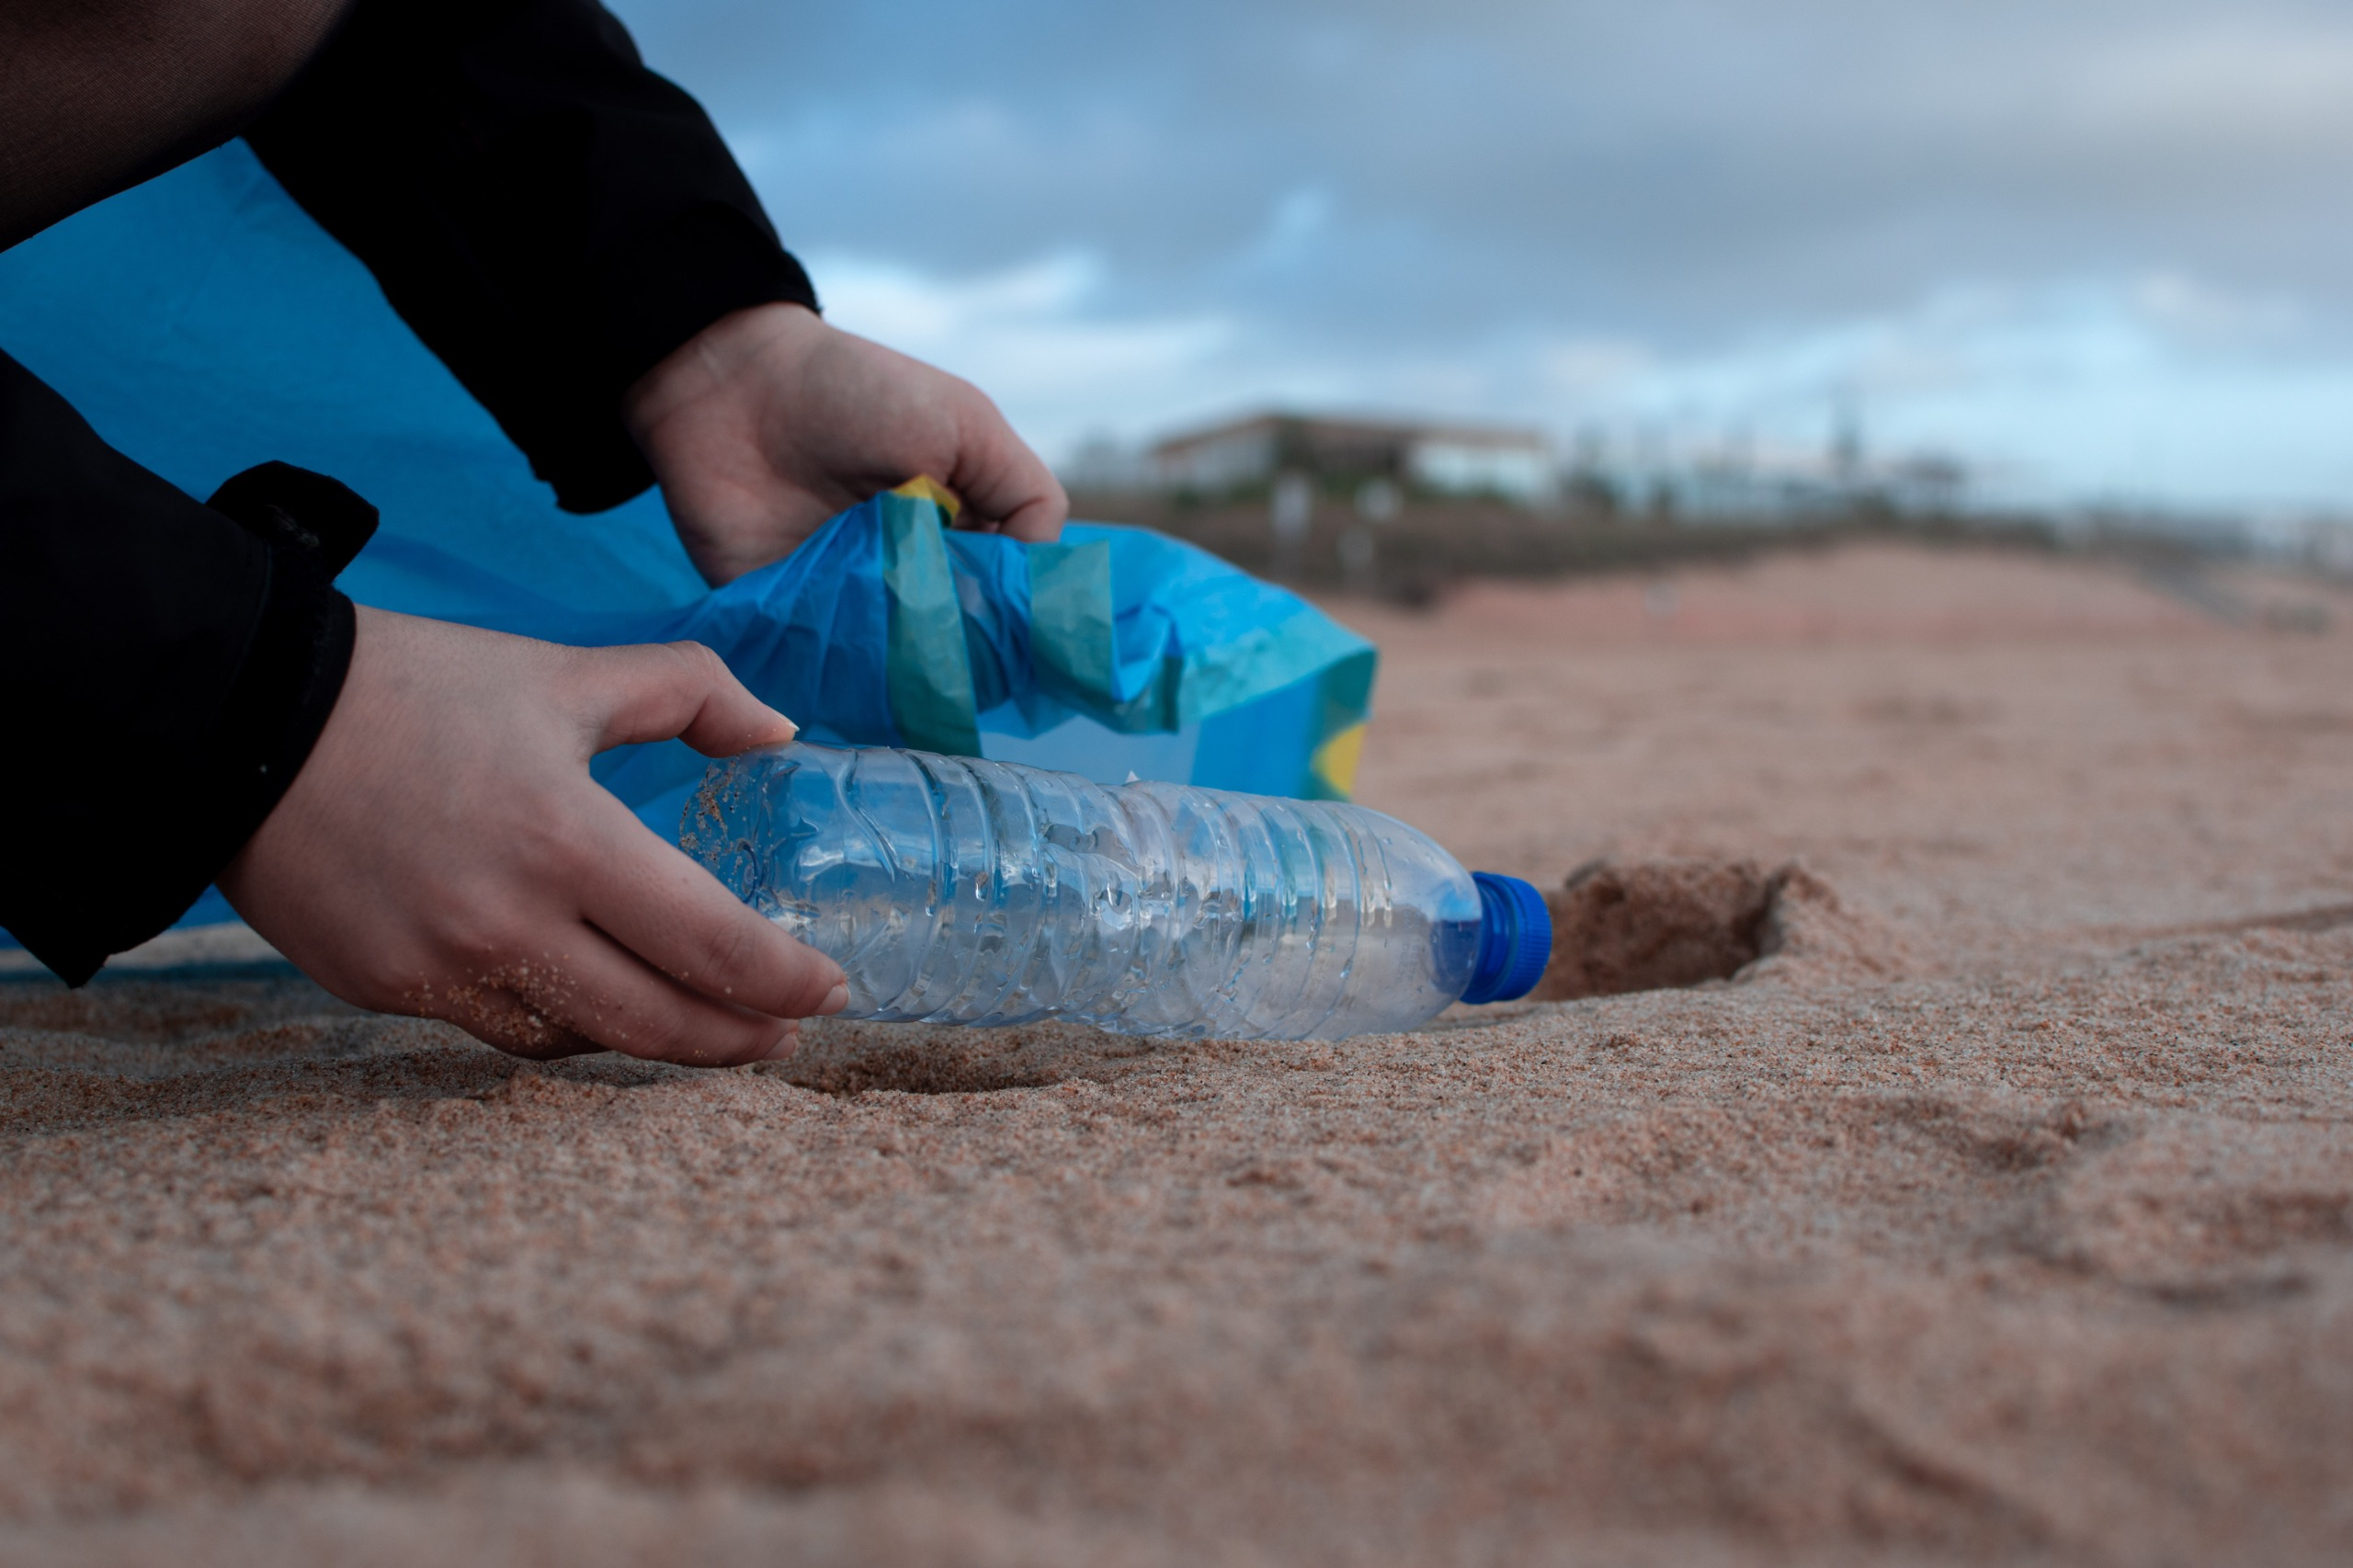 Person collecting bottle from beach